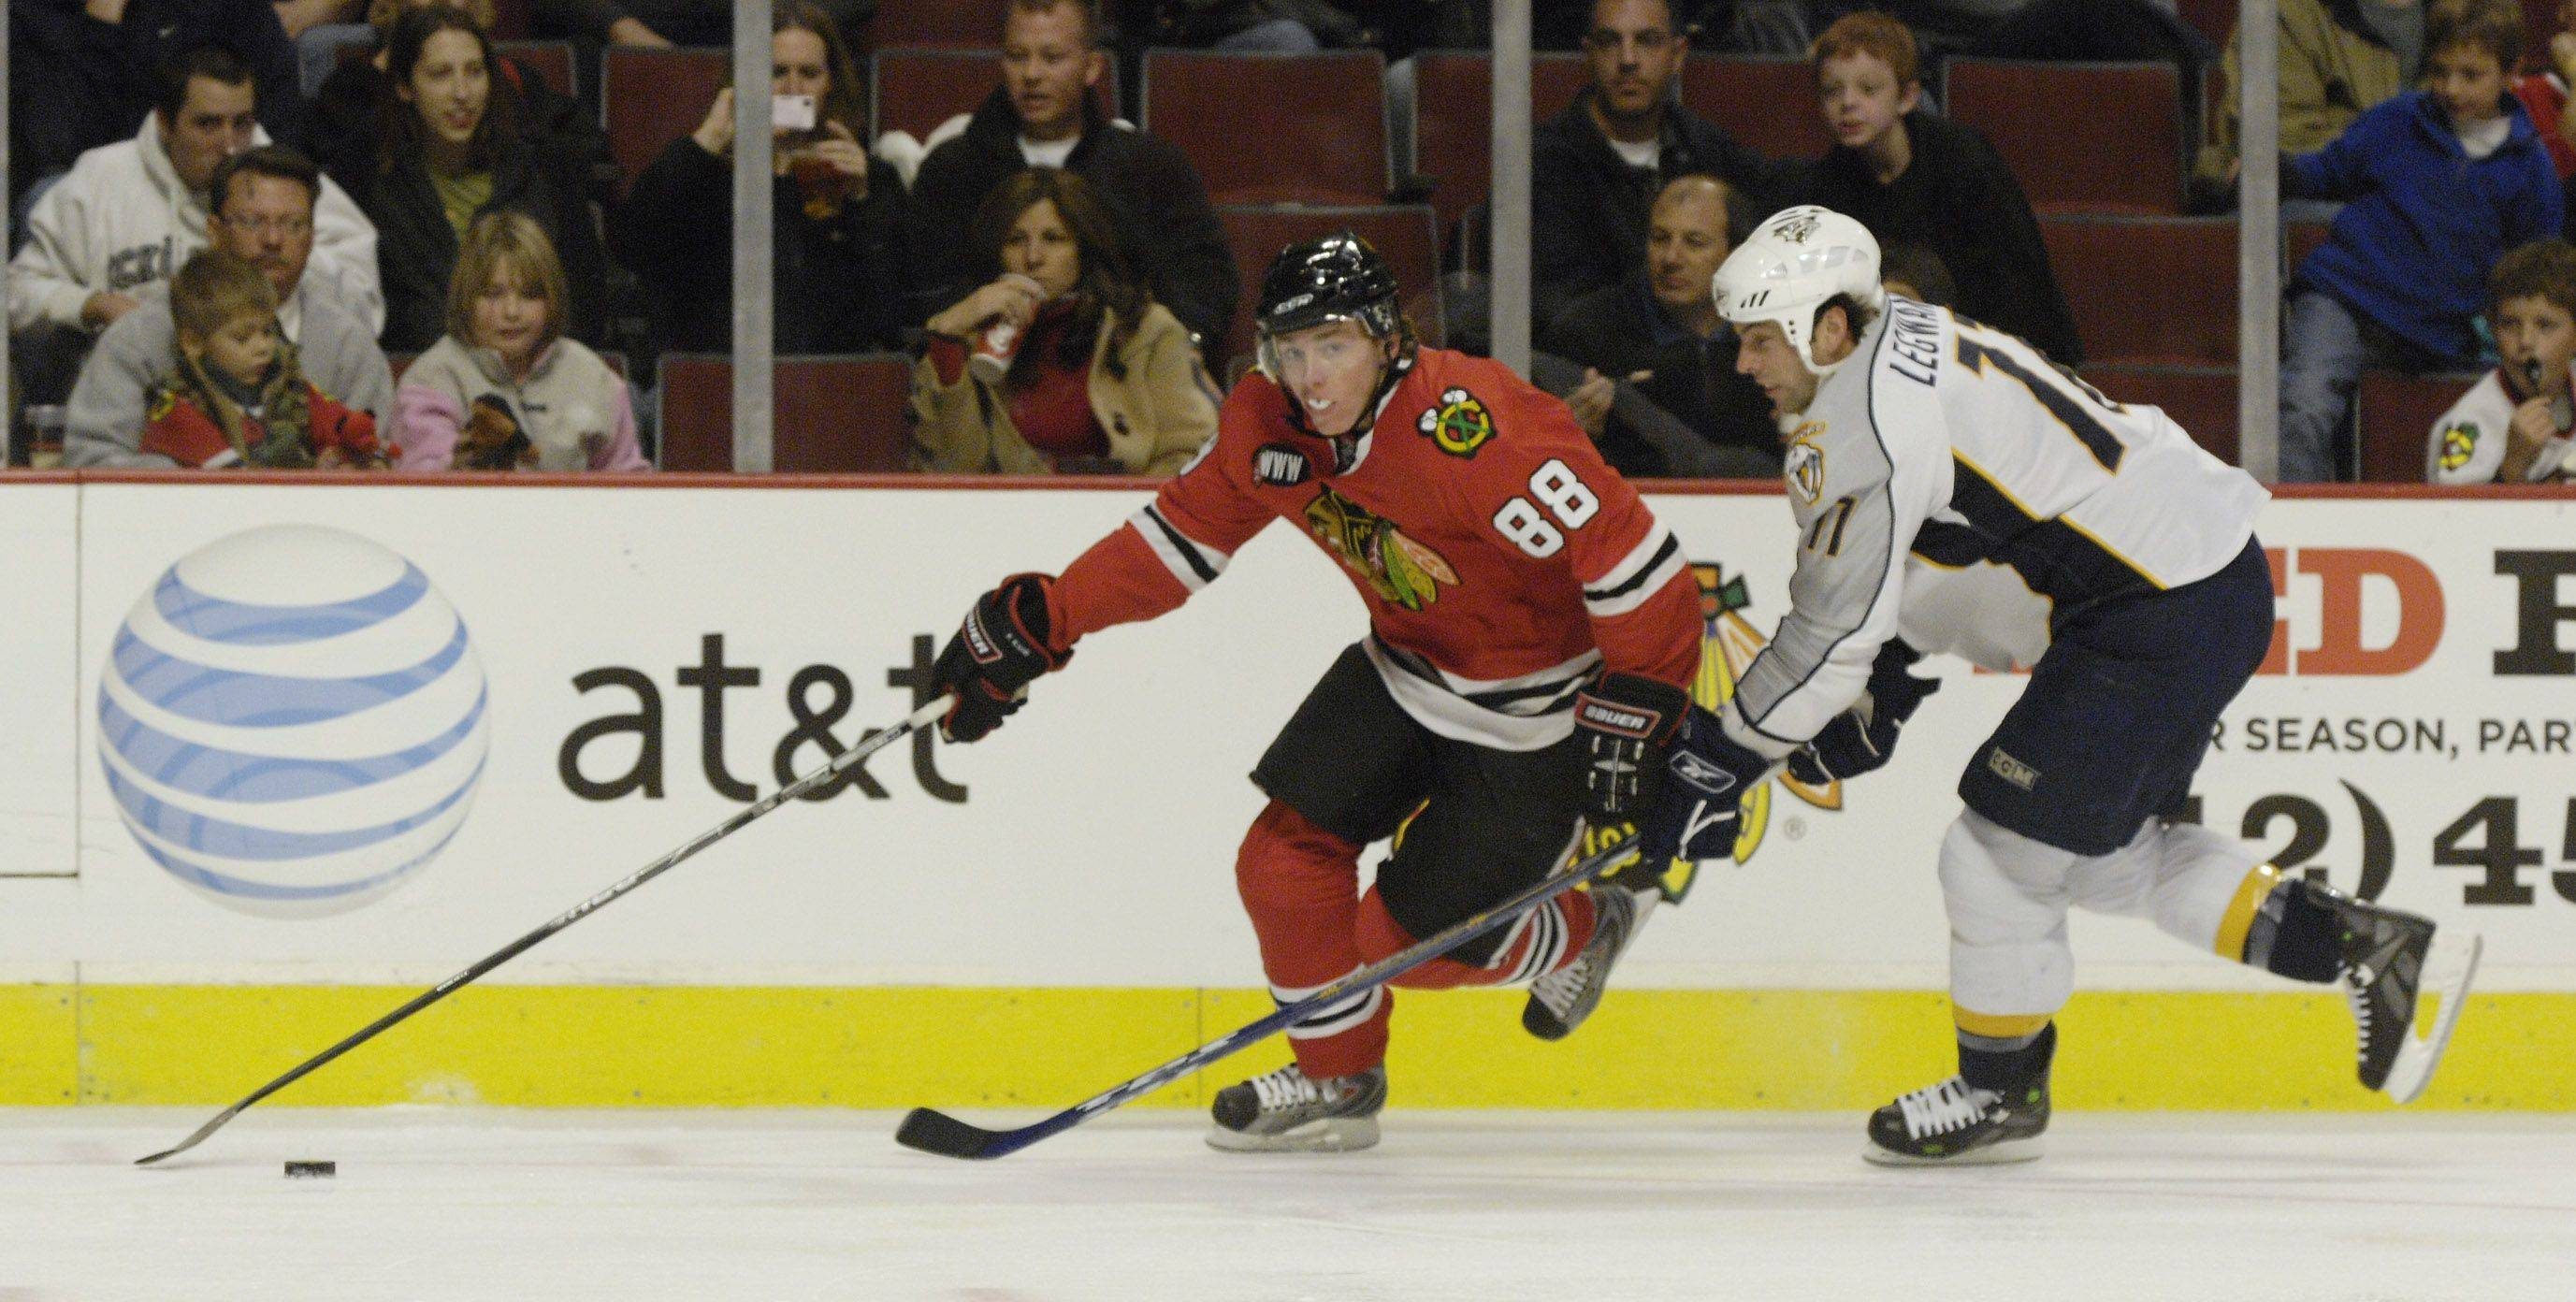 Mark Black/mblack@dailyherald.com The Hawks' Patrick Kane underwent an emergency appendectomy Monday and may not be ready for the beginning of training camp, which starts Friday.